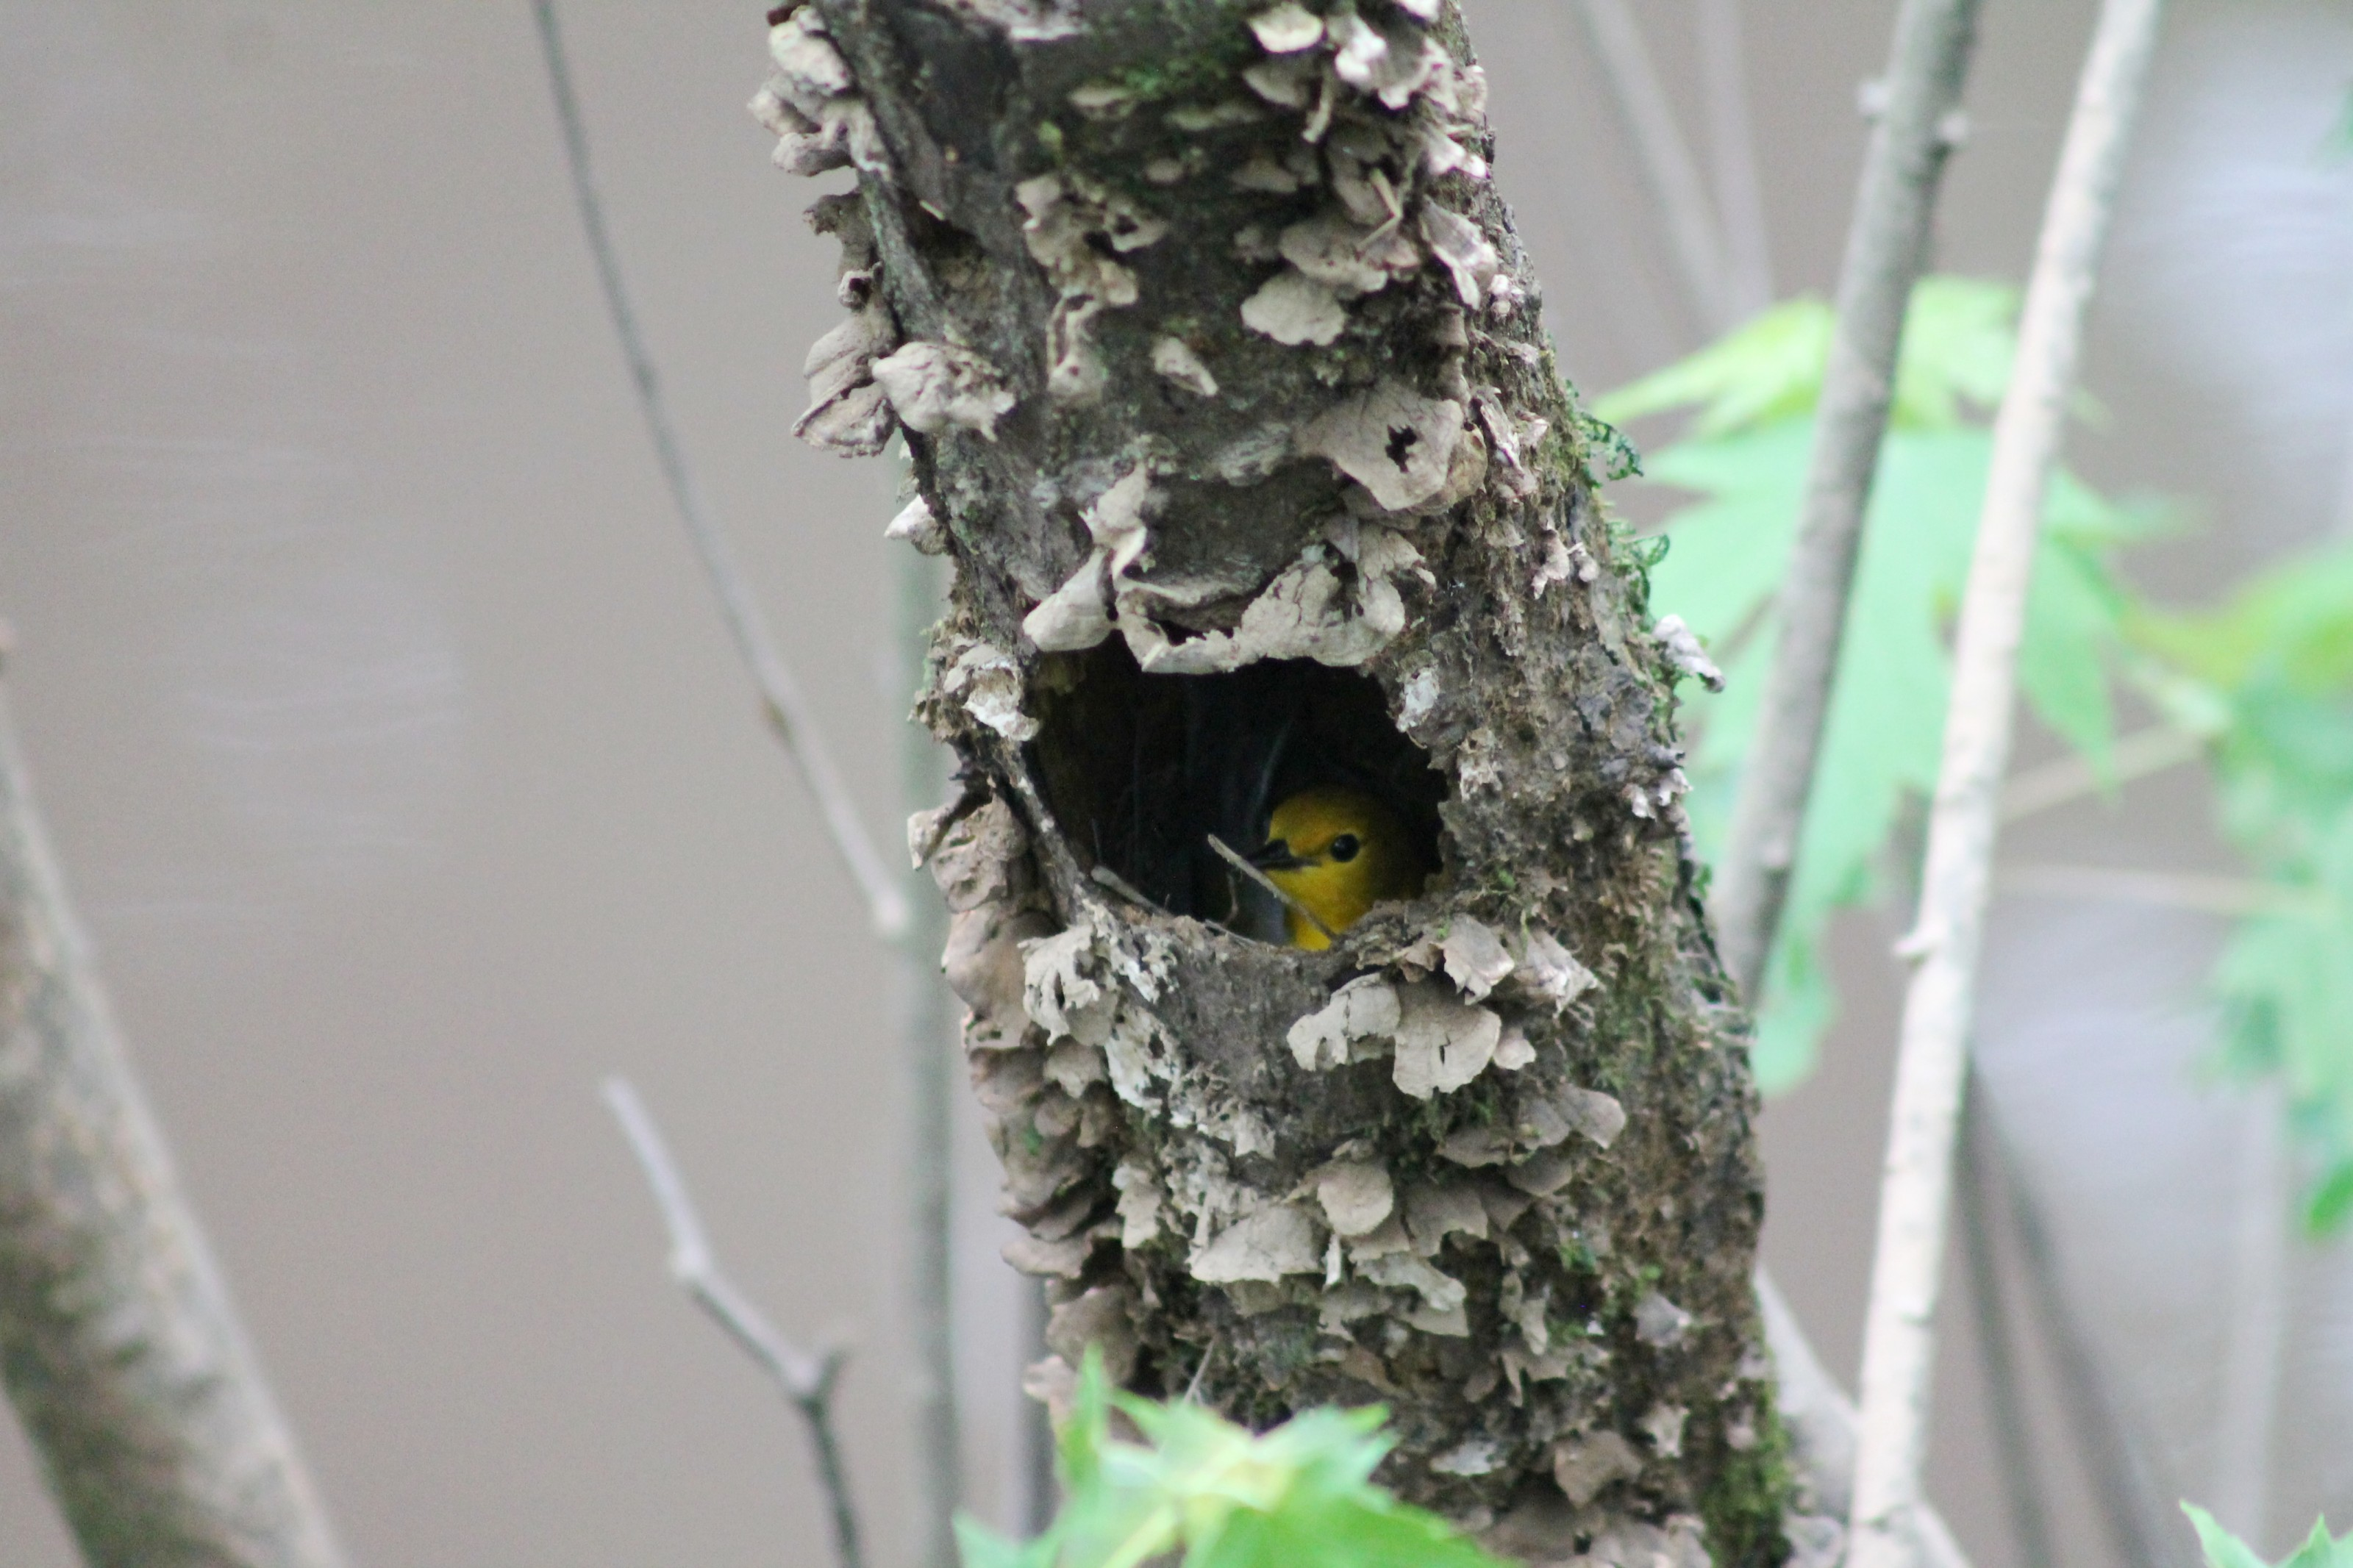 Prothonotary Warbler nest